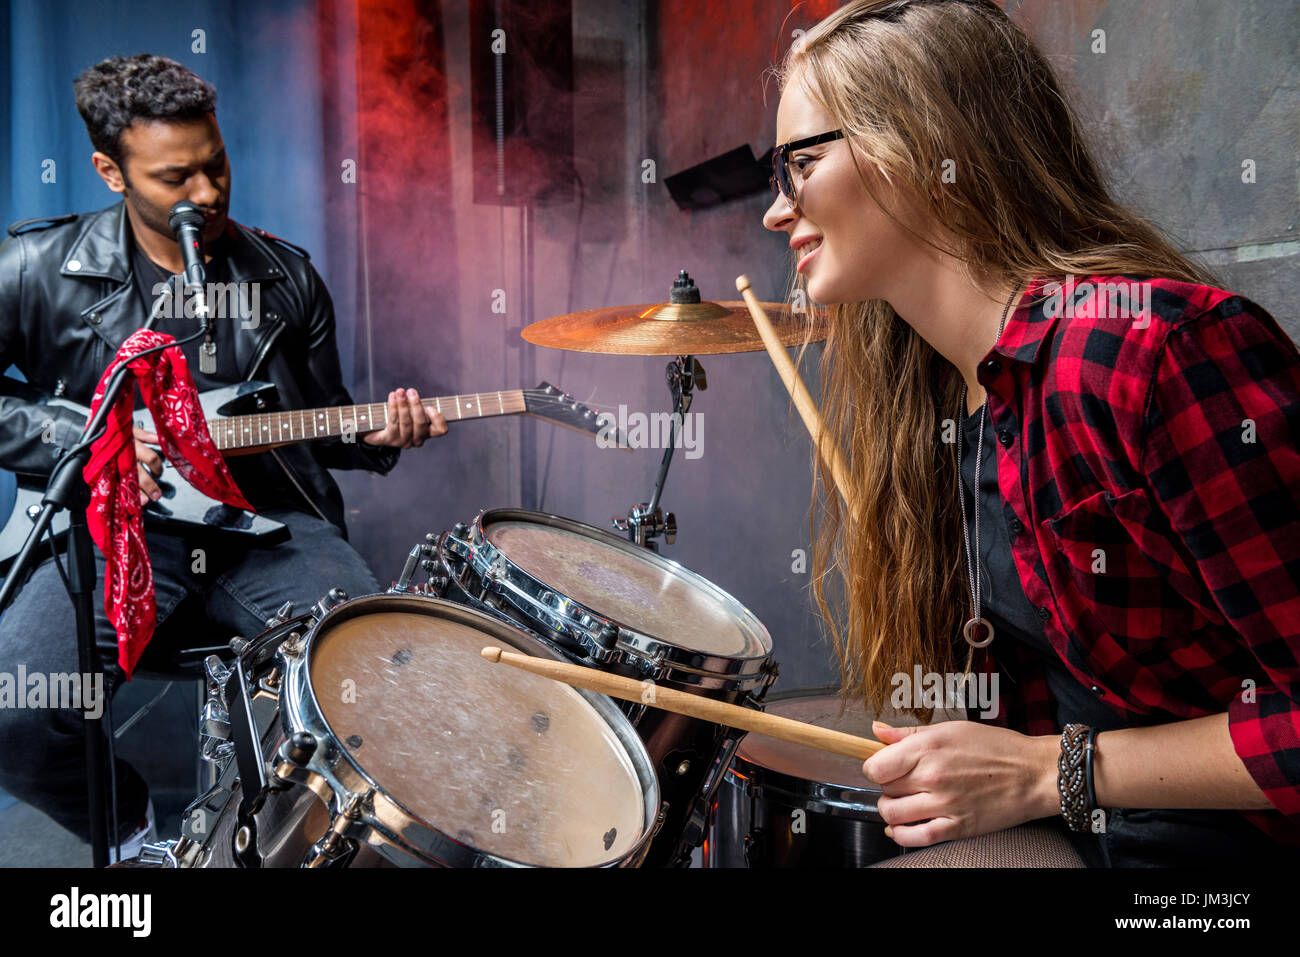 side view of woman playing drums with man playing guitar, rock band concept - Stock Image